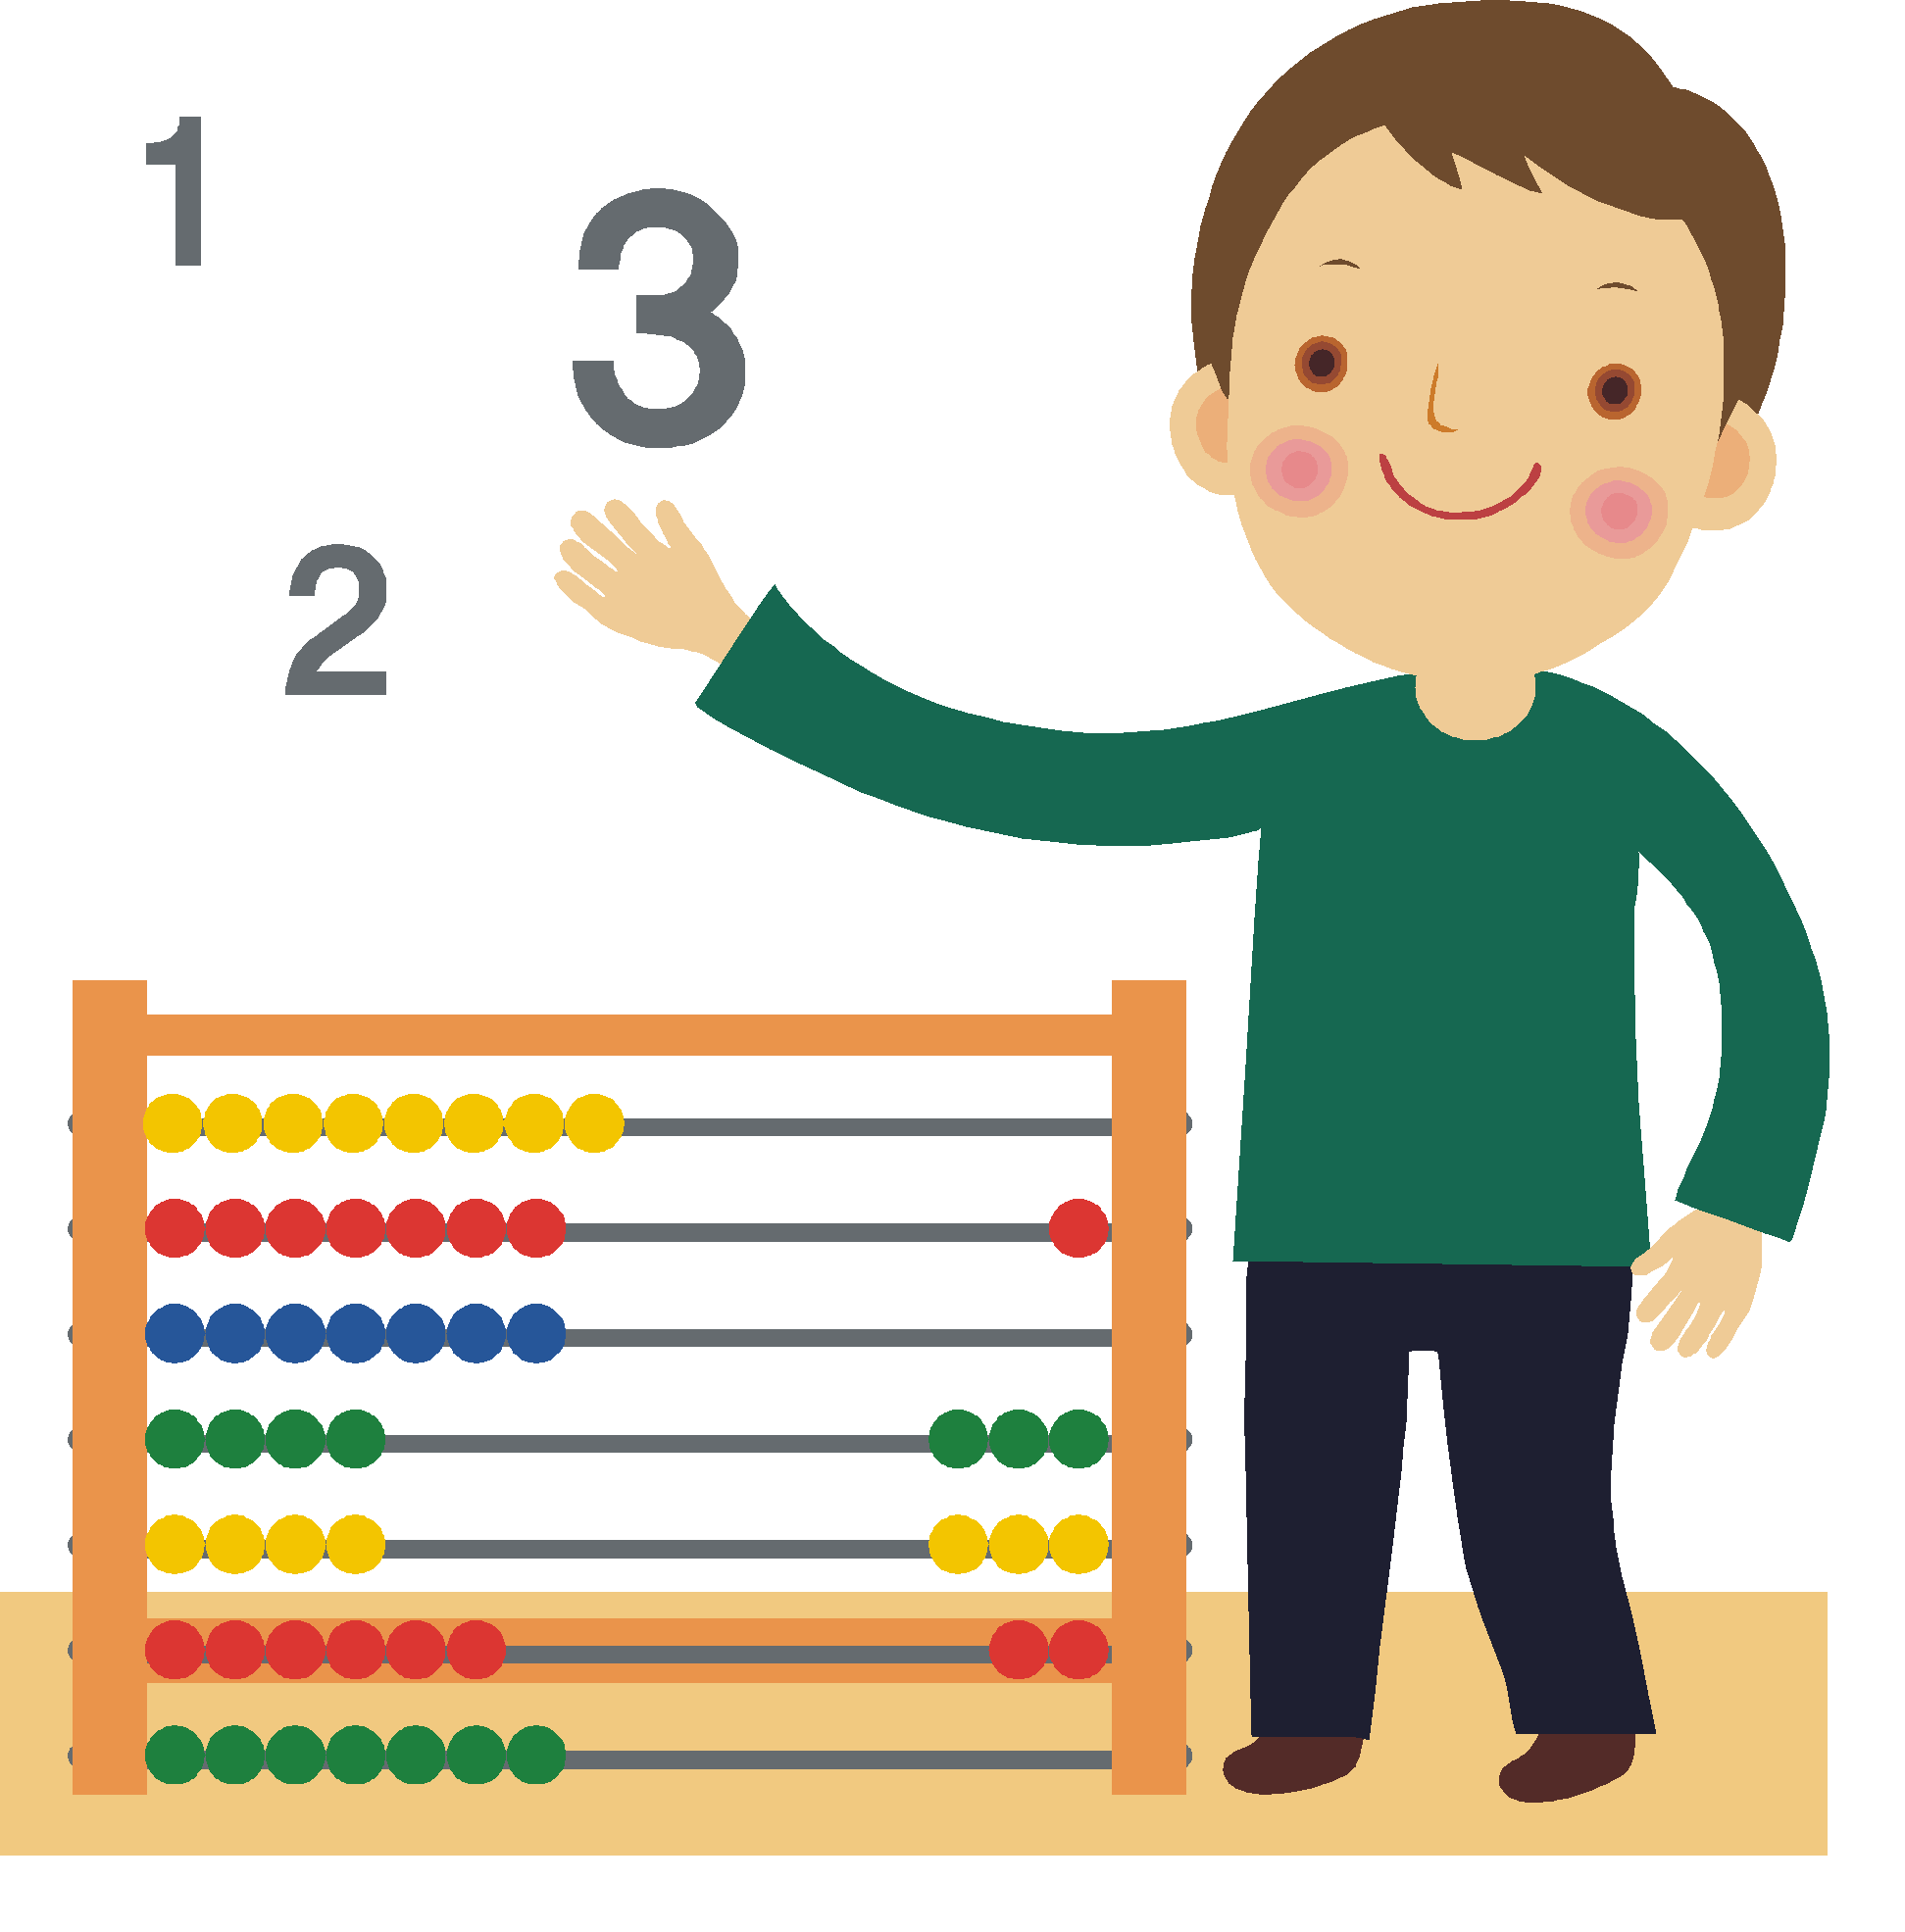 Black child counting clipart banner free Kids Counting Clipart banner free